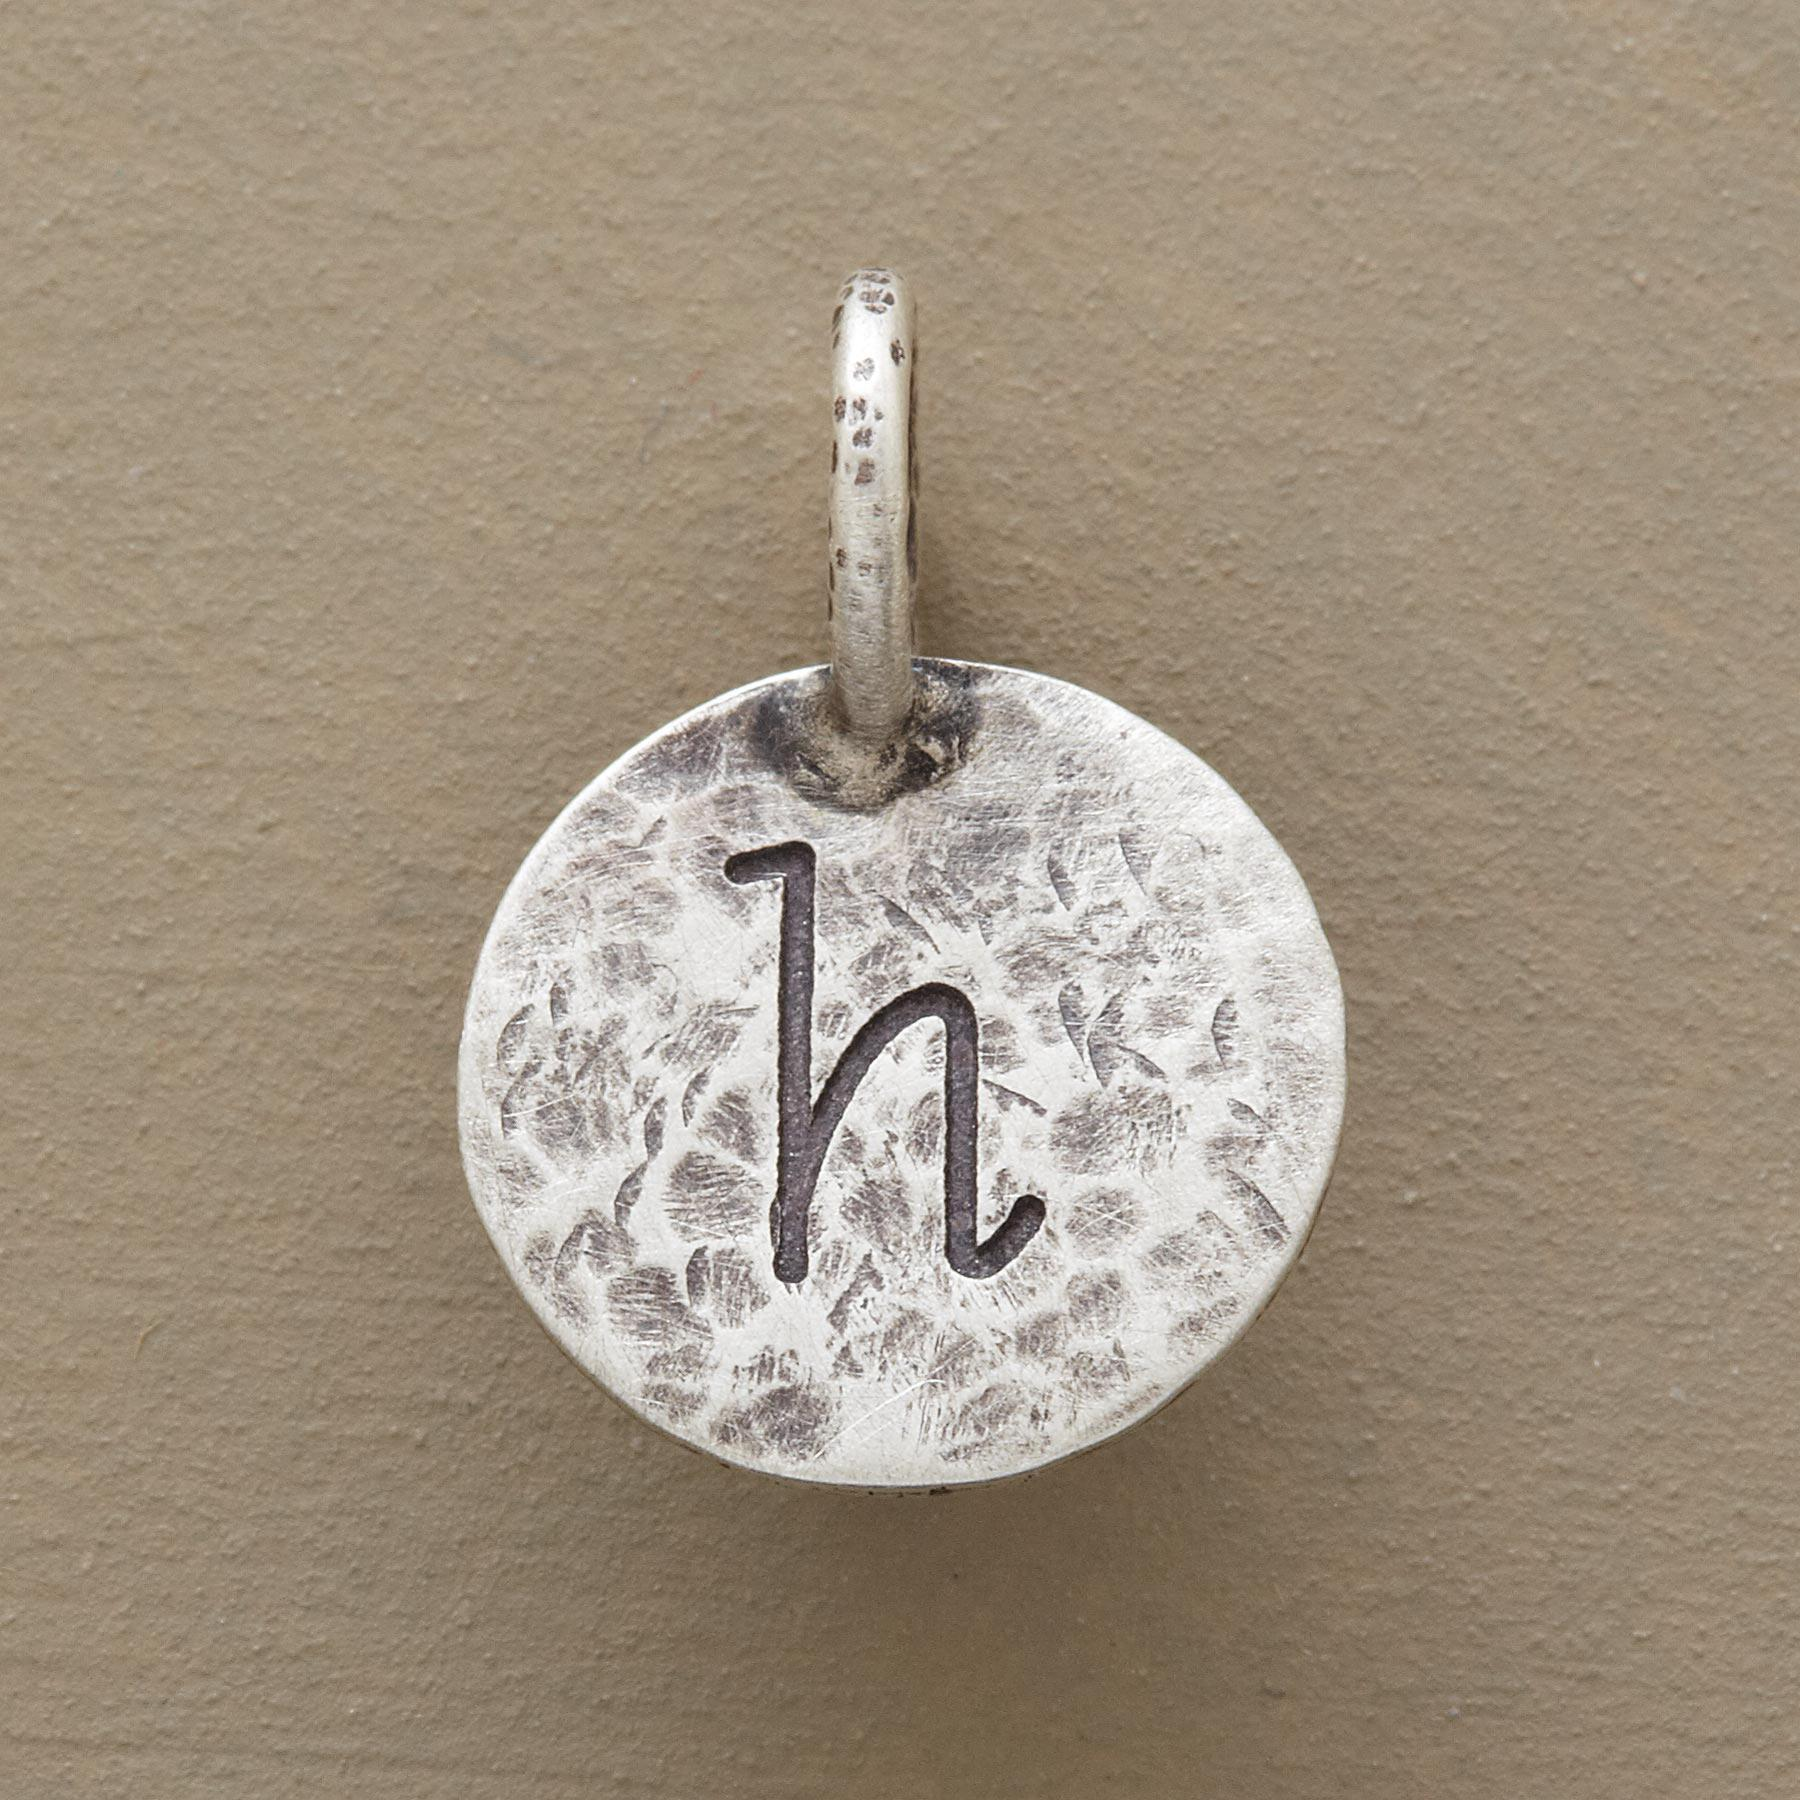 STERLING SILVER HAMMERED INITIAL CHARM: View 1